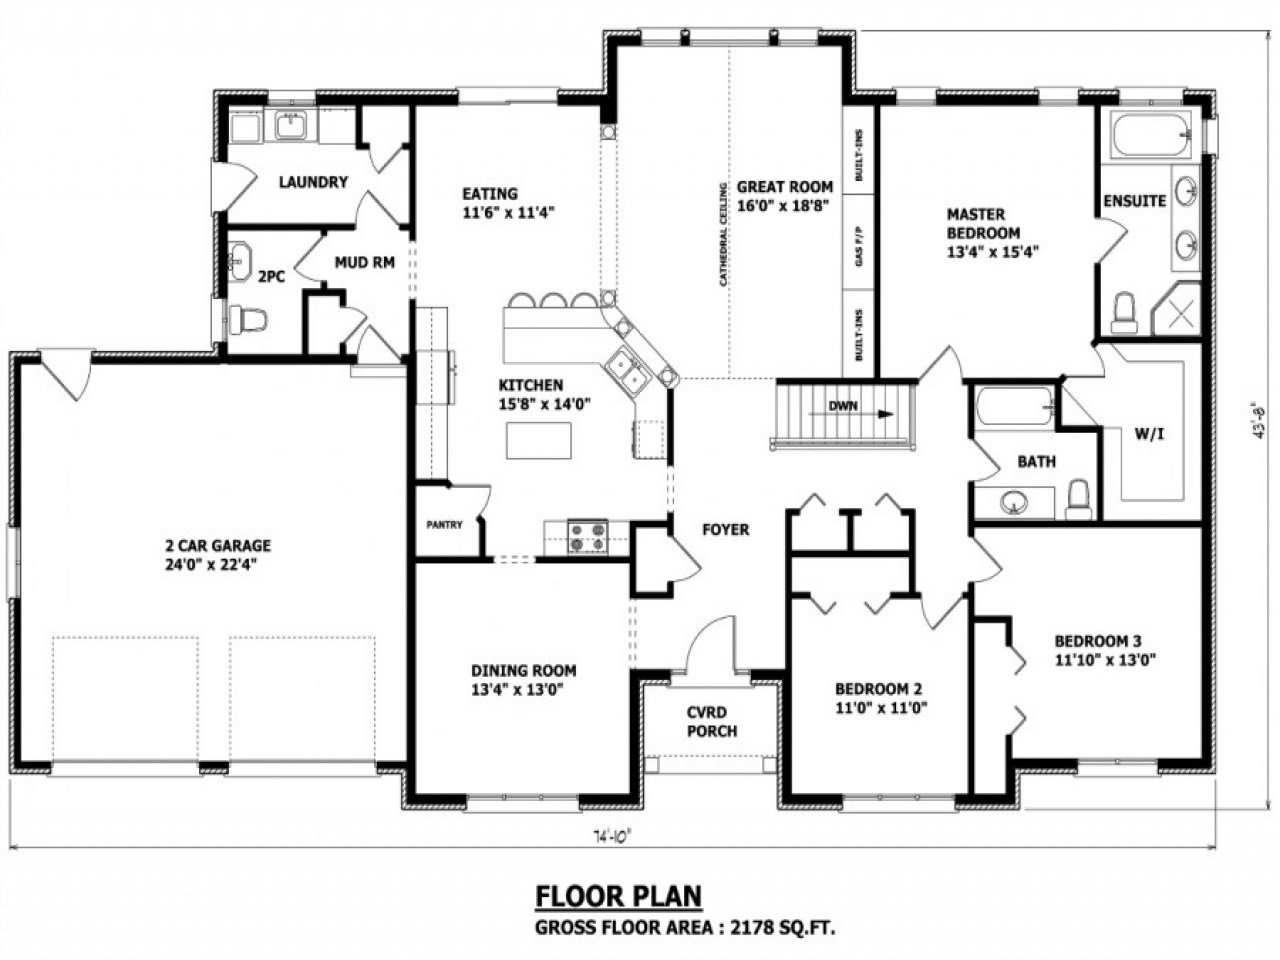 Best Custom Homes Floor Plans House Design 4 Bedroom Home Floor Plans Canadian House Plans Bungalow With Pictures